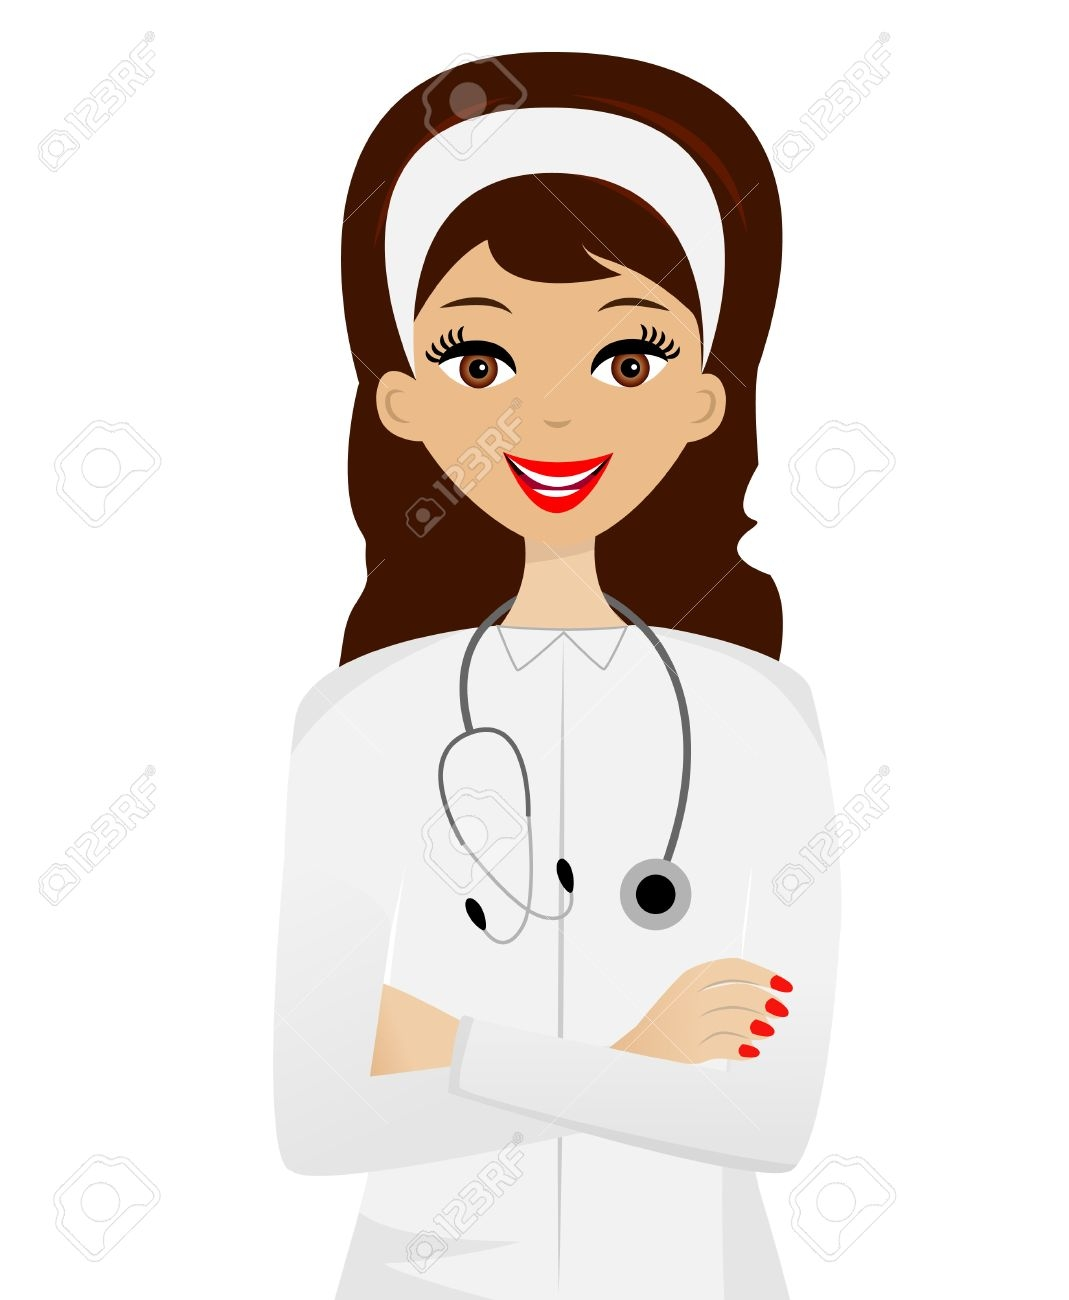 Girl Doctor With Patient Clipart.